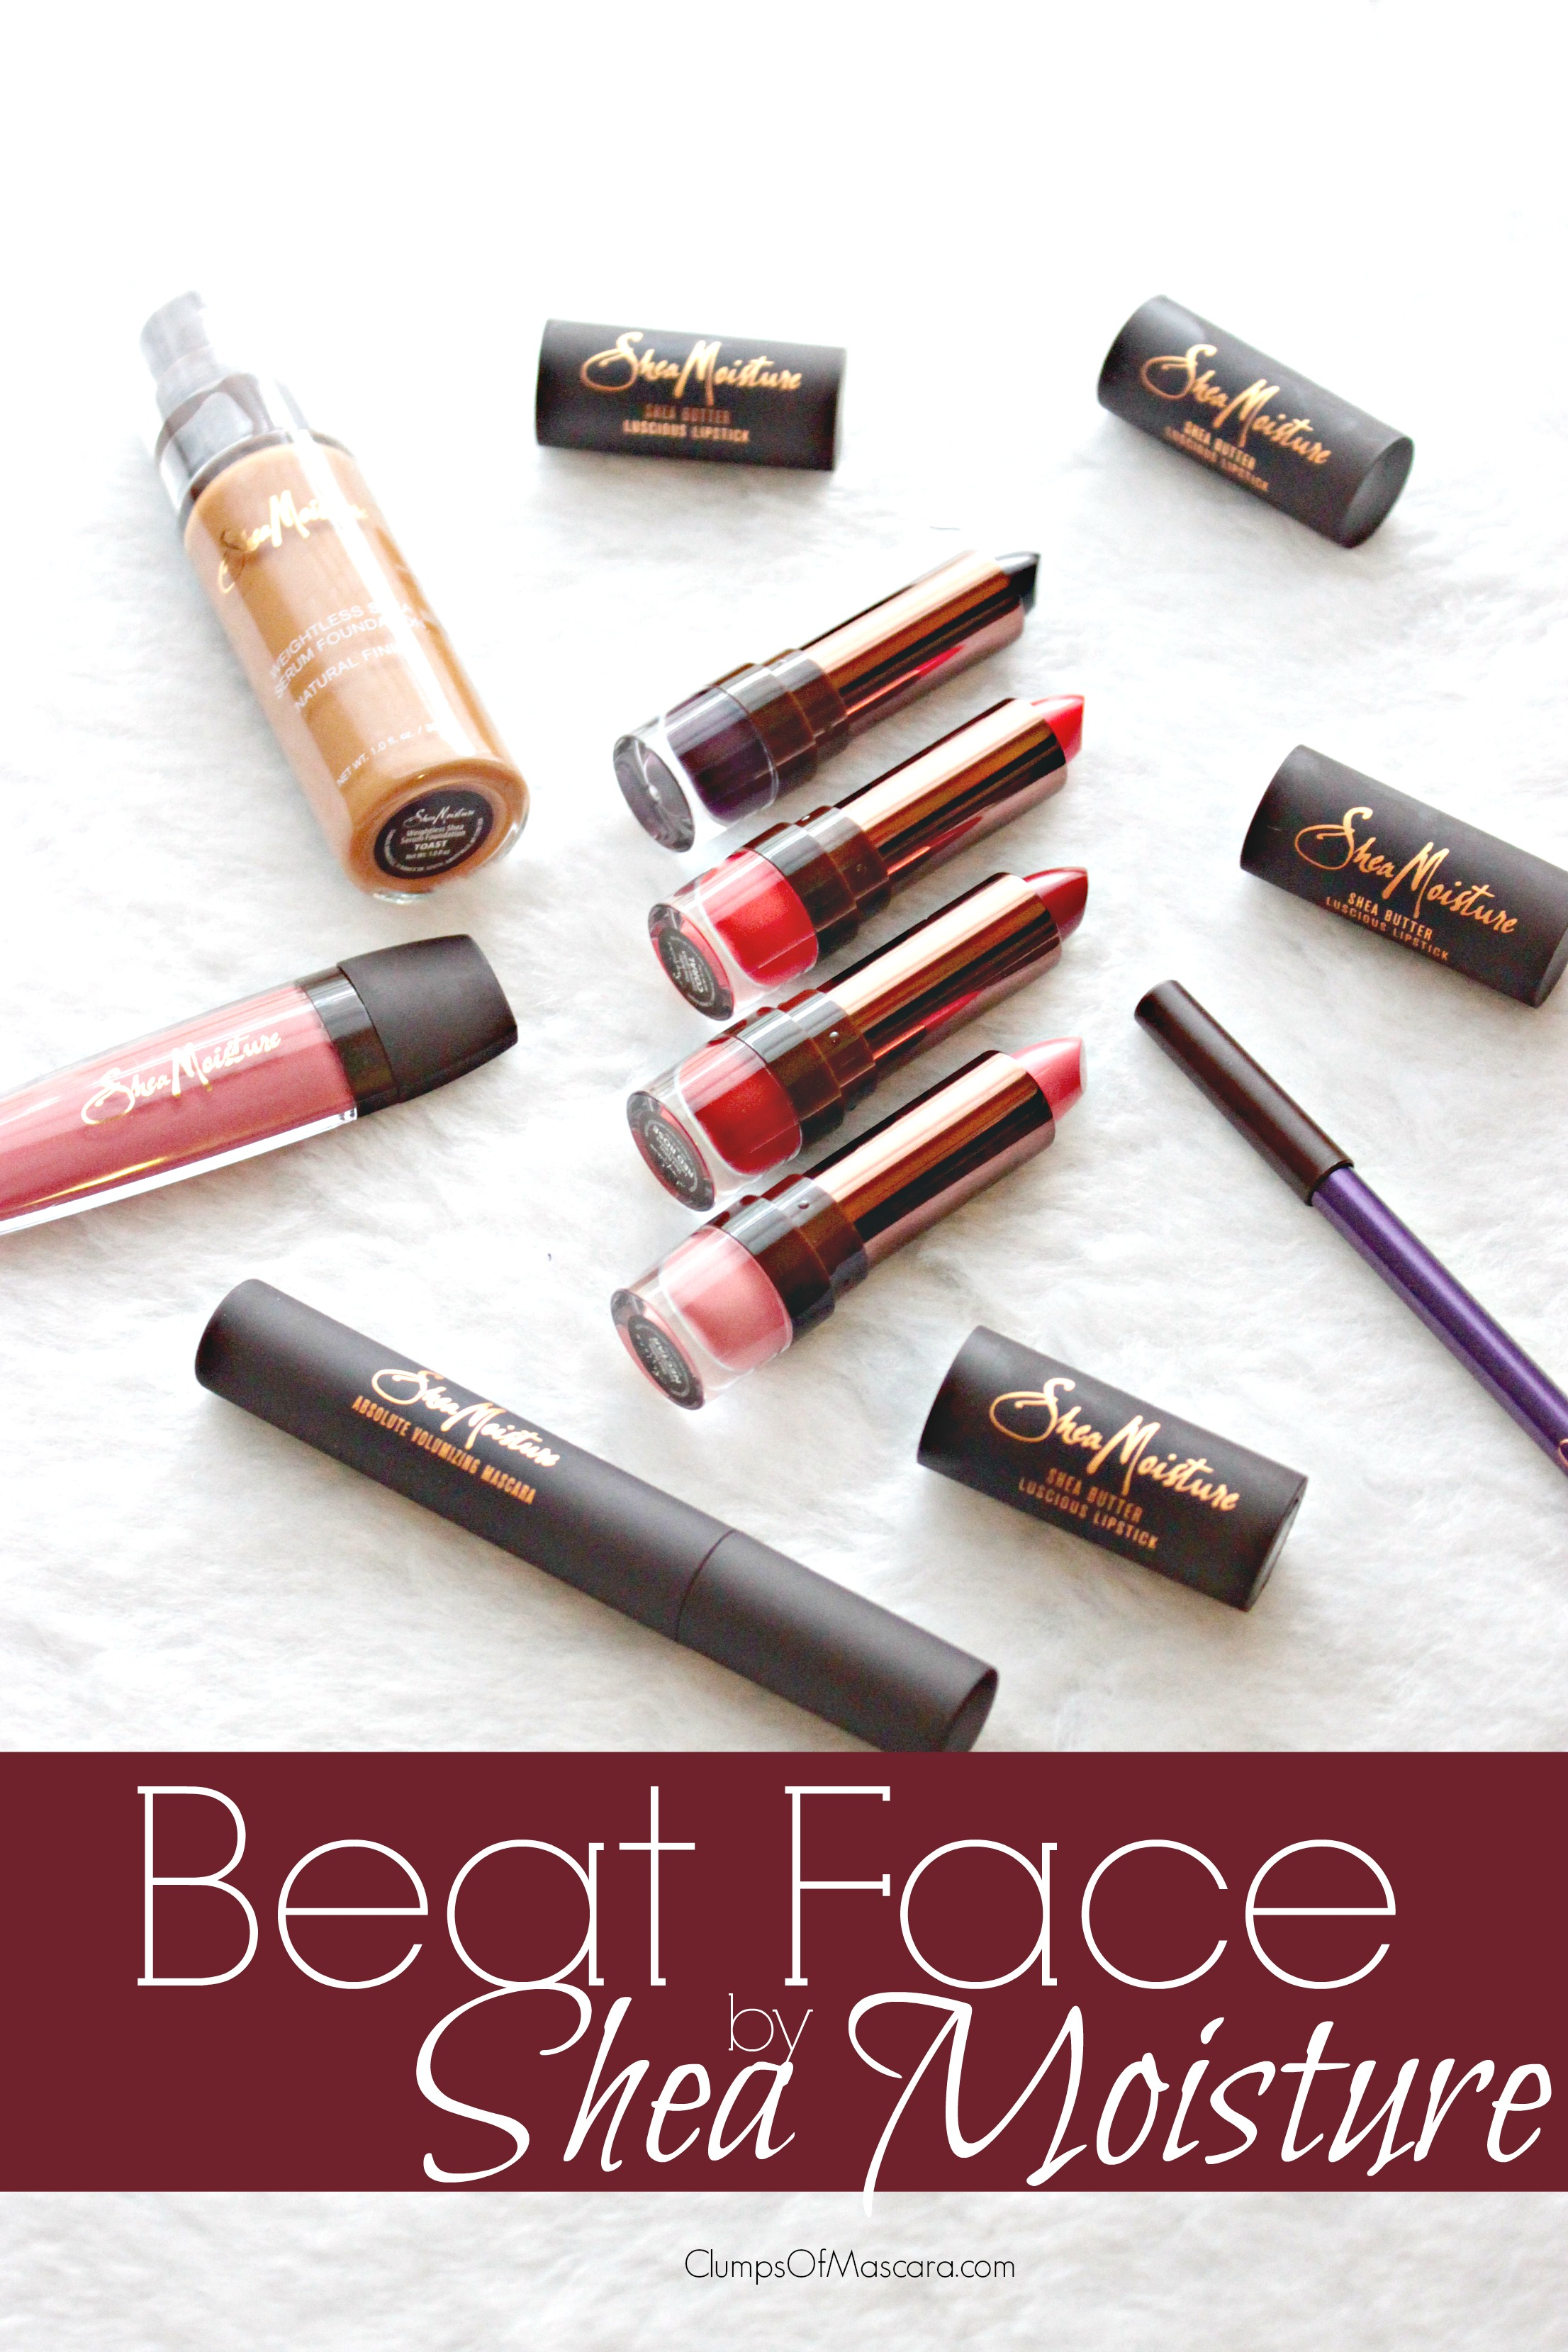 We all know Shea Moisture is rocking hard in the natural hair and body product community but did you know they do makeup too? Check this out.